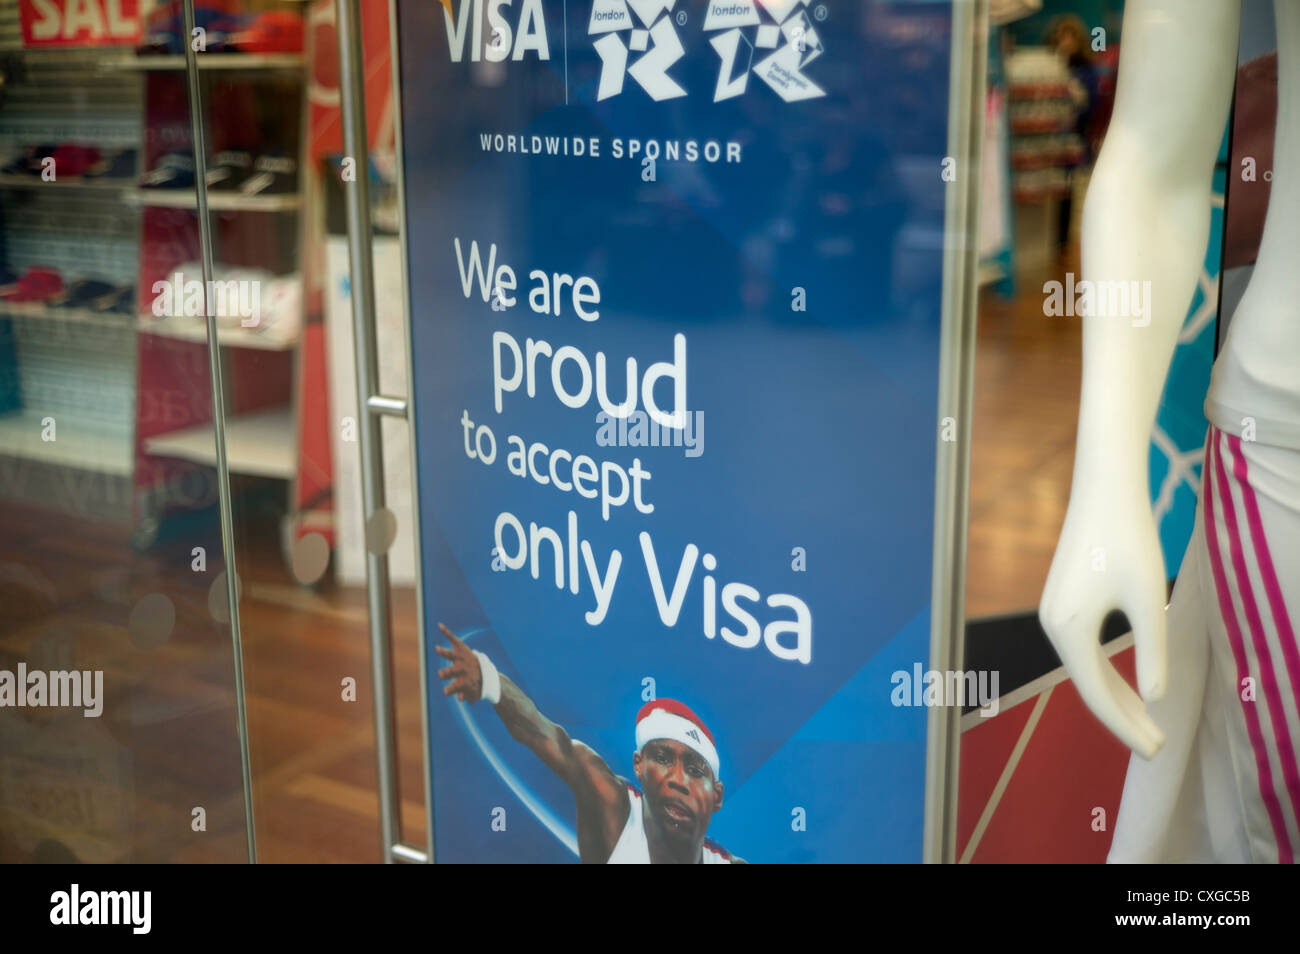 We are proud to accept only Visa sign in shop window selling 2012 London Olympic souvenirs - Stock Image